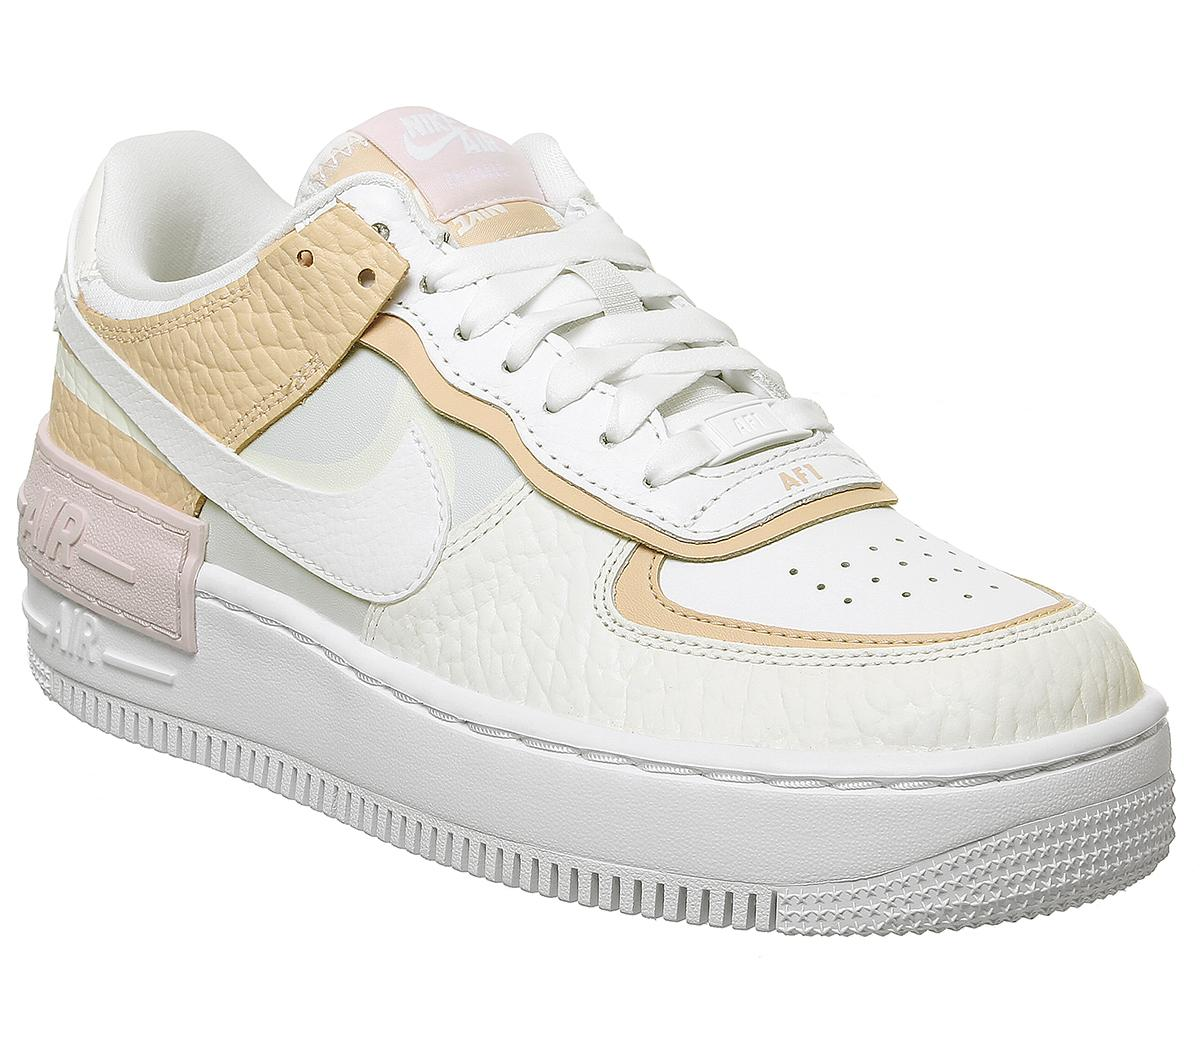 Nike Air Force 1 Shadow Trainers Spruce Aura White Sail Rose Hers Trainers Nike air force 1 '07: air force 1 shadow trainers